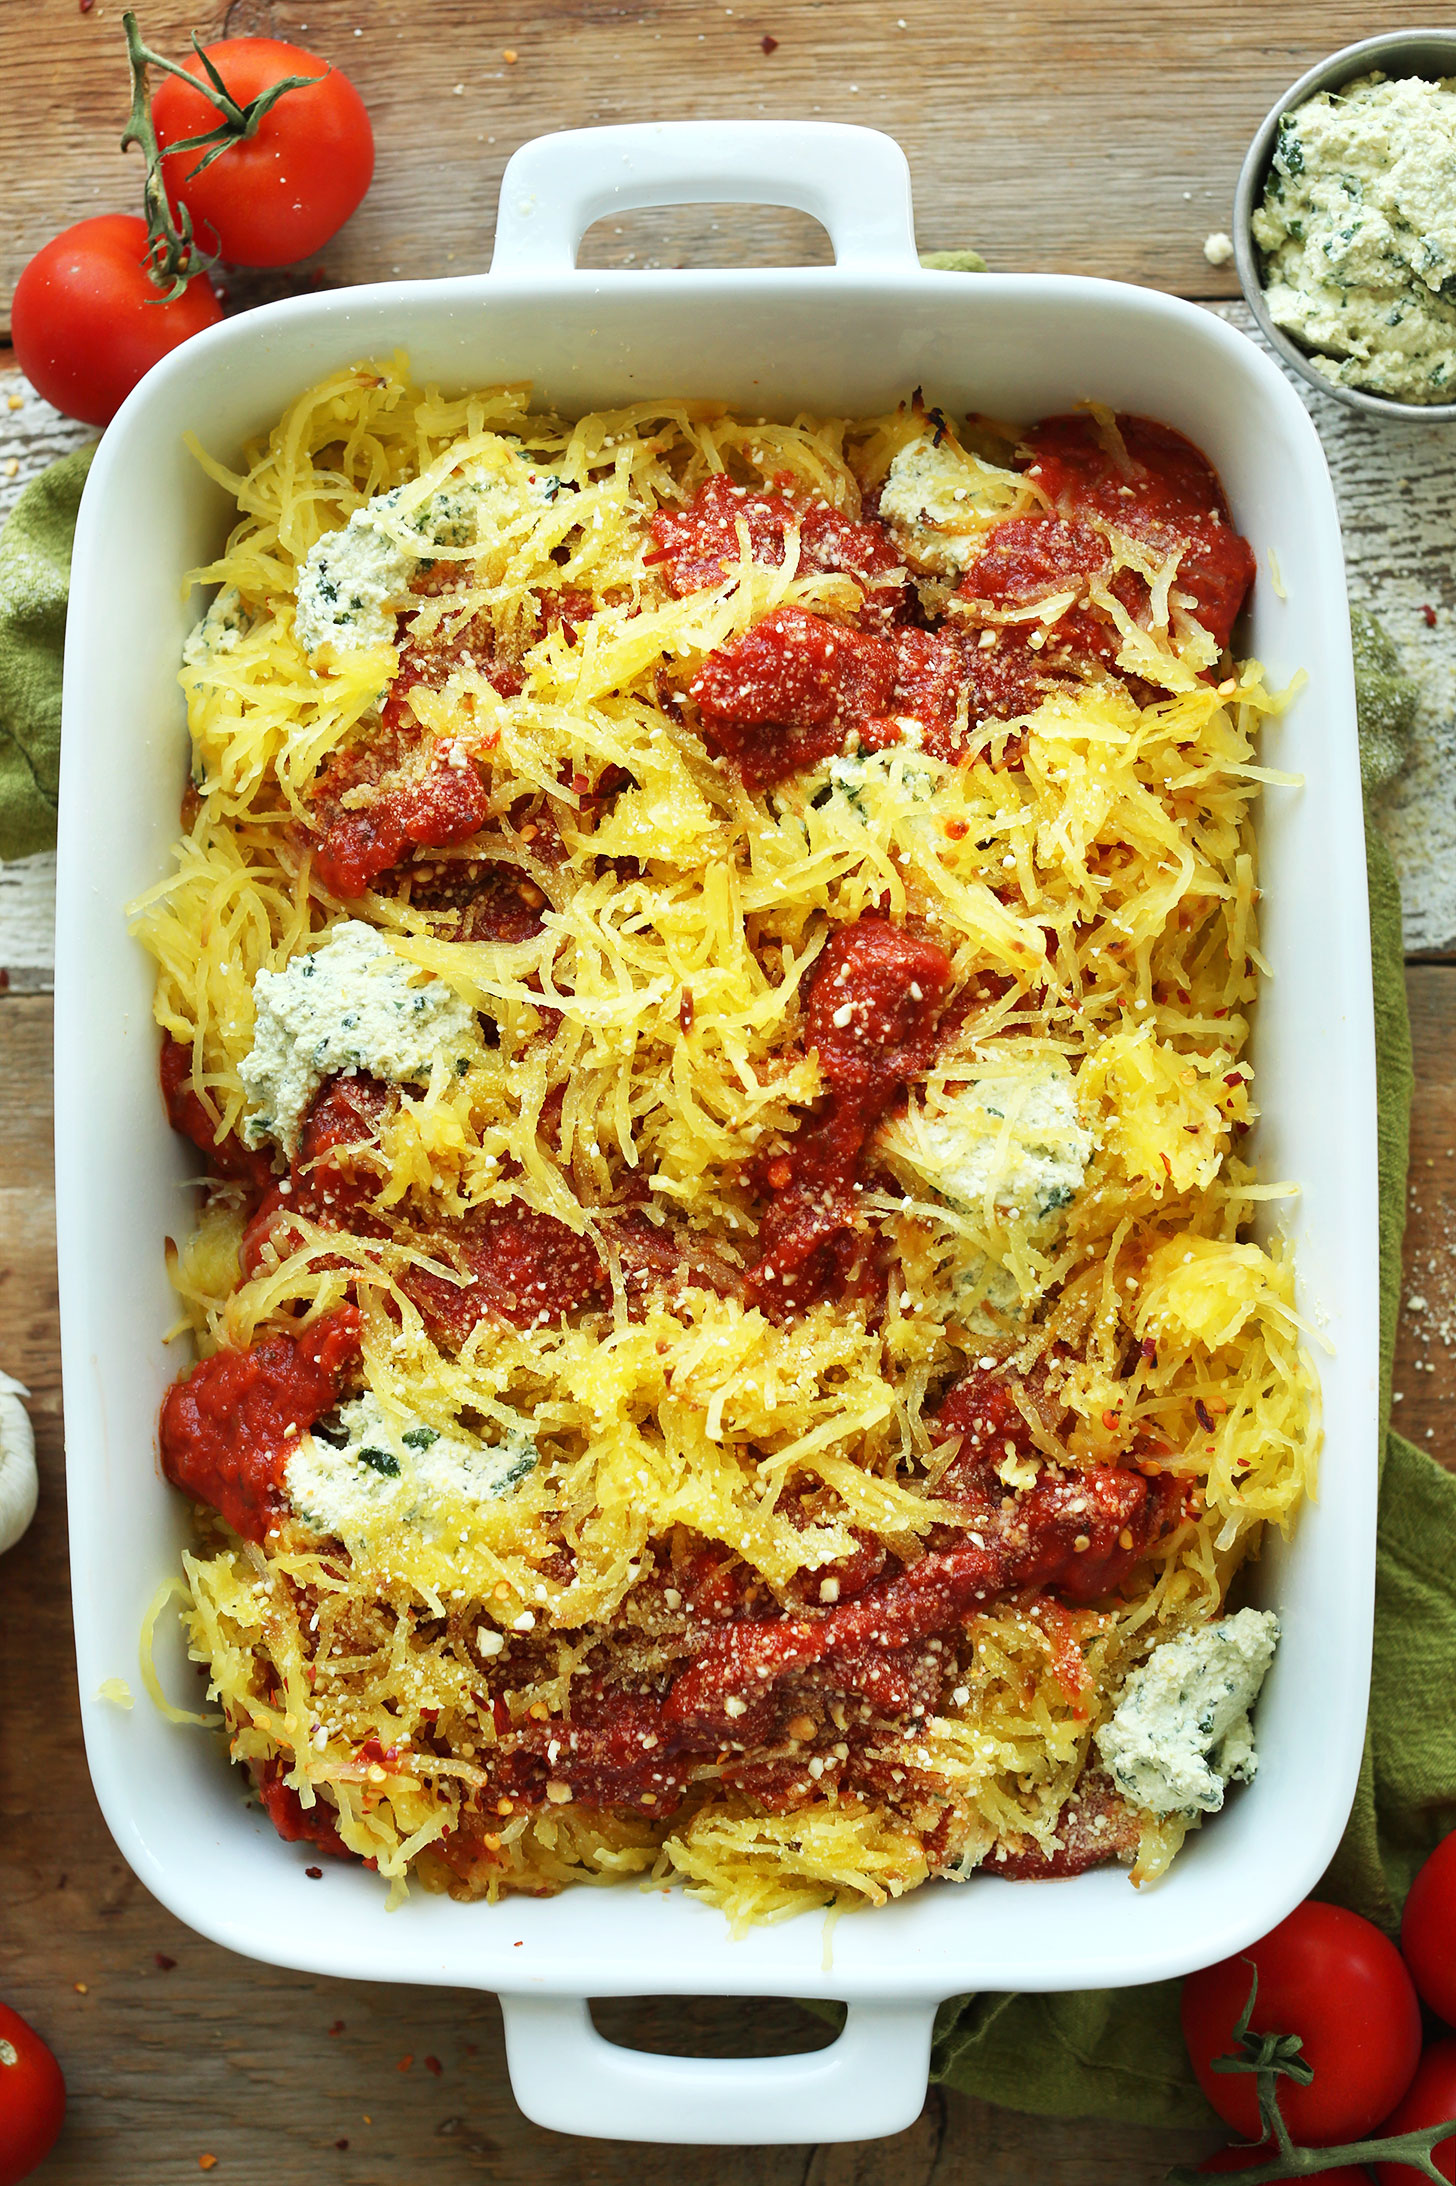 Ceramic baking dish filled with a healthy vegan fall recipe of Spaghetti Squash Lasagna Bake